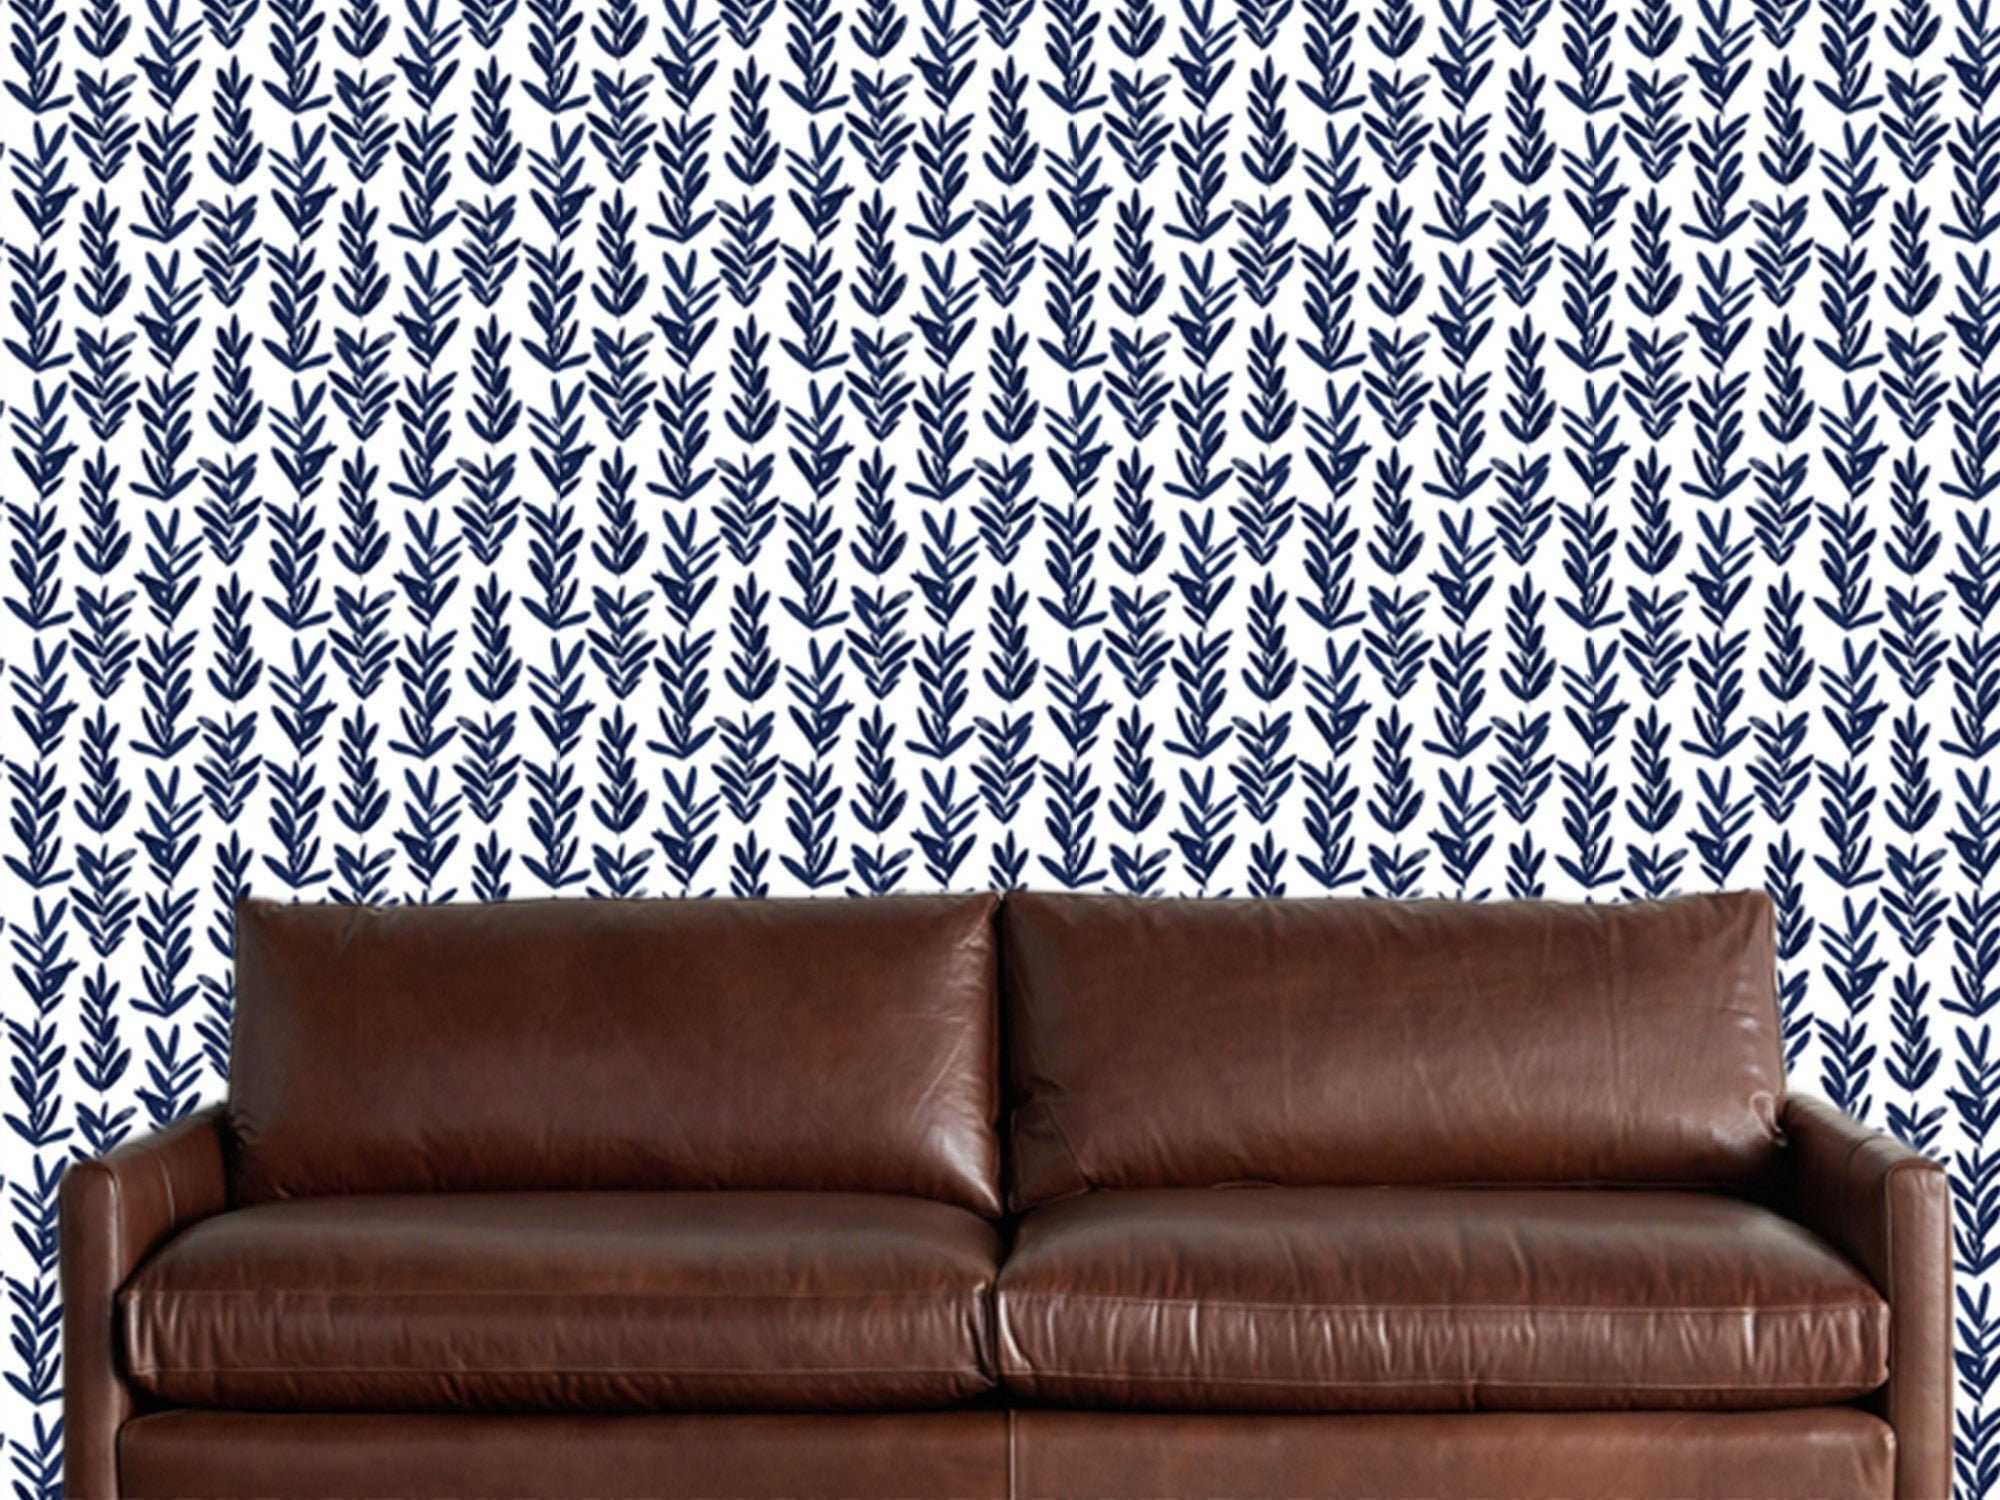 Navy Blue White Floral Wallpaper Removable Traditional Wallpaper